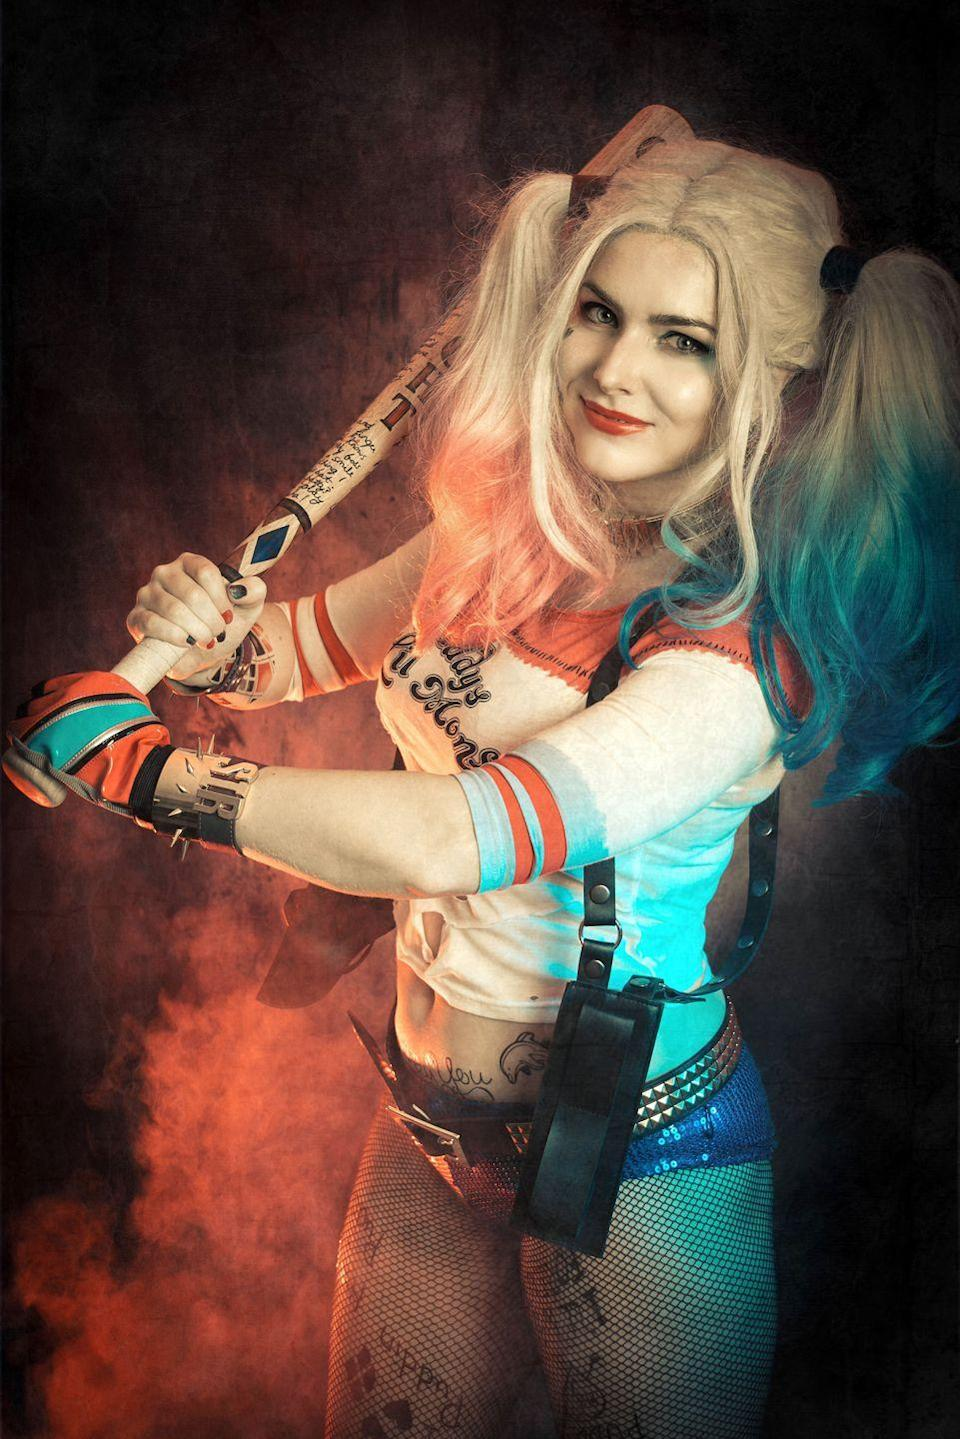 """<p>If you saw <em>Suicide Squad</em>, you're well aware of this iconic Harley Quinn outfit. Scottish cosplayer The Crystal Wolf (aka Erin Kirkwood) brought the look to life with numerous accessories and hand-crafted temporary tattoos.</p><p><strong>See more at </strong><a href=""""https://www.instagram.com/p/Bs89lGPjEDt/"""" rel=""""nofollow noopener"""" target=""""_blank"""" data-ylk=""""slk:@CrystalWolfCosplay"""" class=""""link rapid-noclick-resp""""><strong>@CrystalWolfCosplay</strong></a><strong>.</strong></p><p><a class=""""link rapid-noclick-resp"""" href=""""https://www.amazon.com/LOreal-Paris-Color-Colorista-Hotpink/dp/B074K6DJ4T/ref=sr_1_5?tag=syn-yahoo-20&ascsubtag=%5Bartid%7C10050.g.29418972%5Bsrc%7Cyahoo-us"""" rel=""""nofollow noopener"""" target=""""_blank"""" data-ylk=""""slk:SHOP TEMPORARY PINK HAIR DYE""""><strong>SHOP TEMPORARY PINK HAIR DYE</strong></a></p>"""